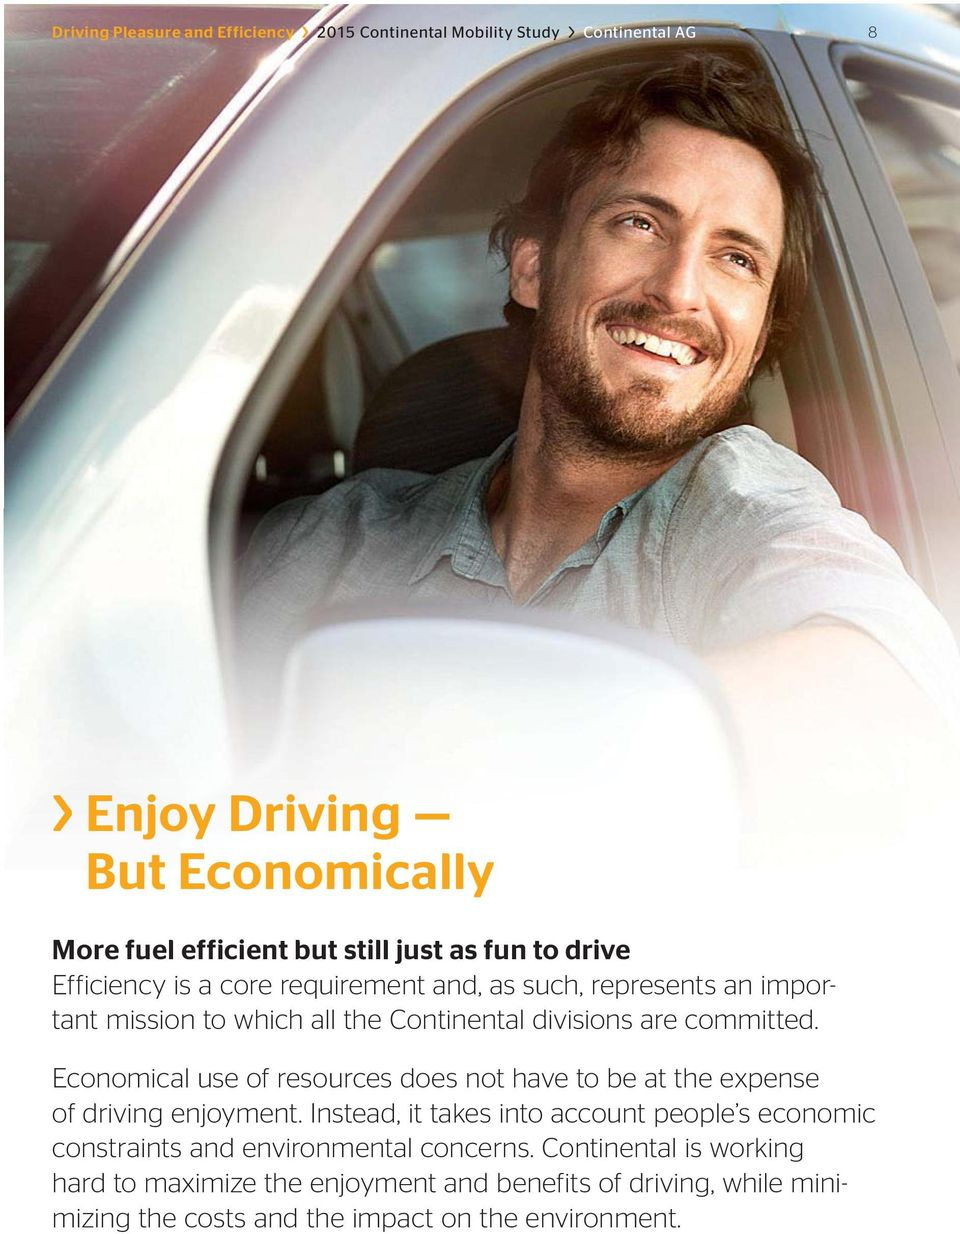 Economical use of resources does not have to be at the expense of driving enjoyment.